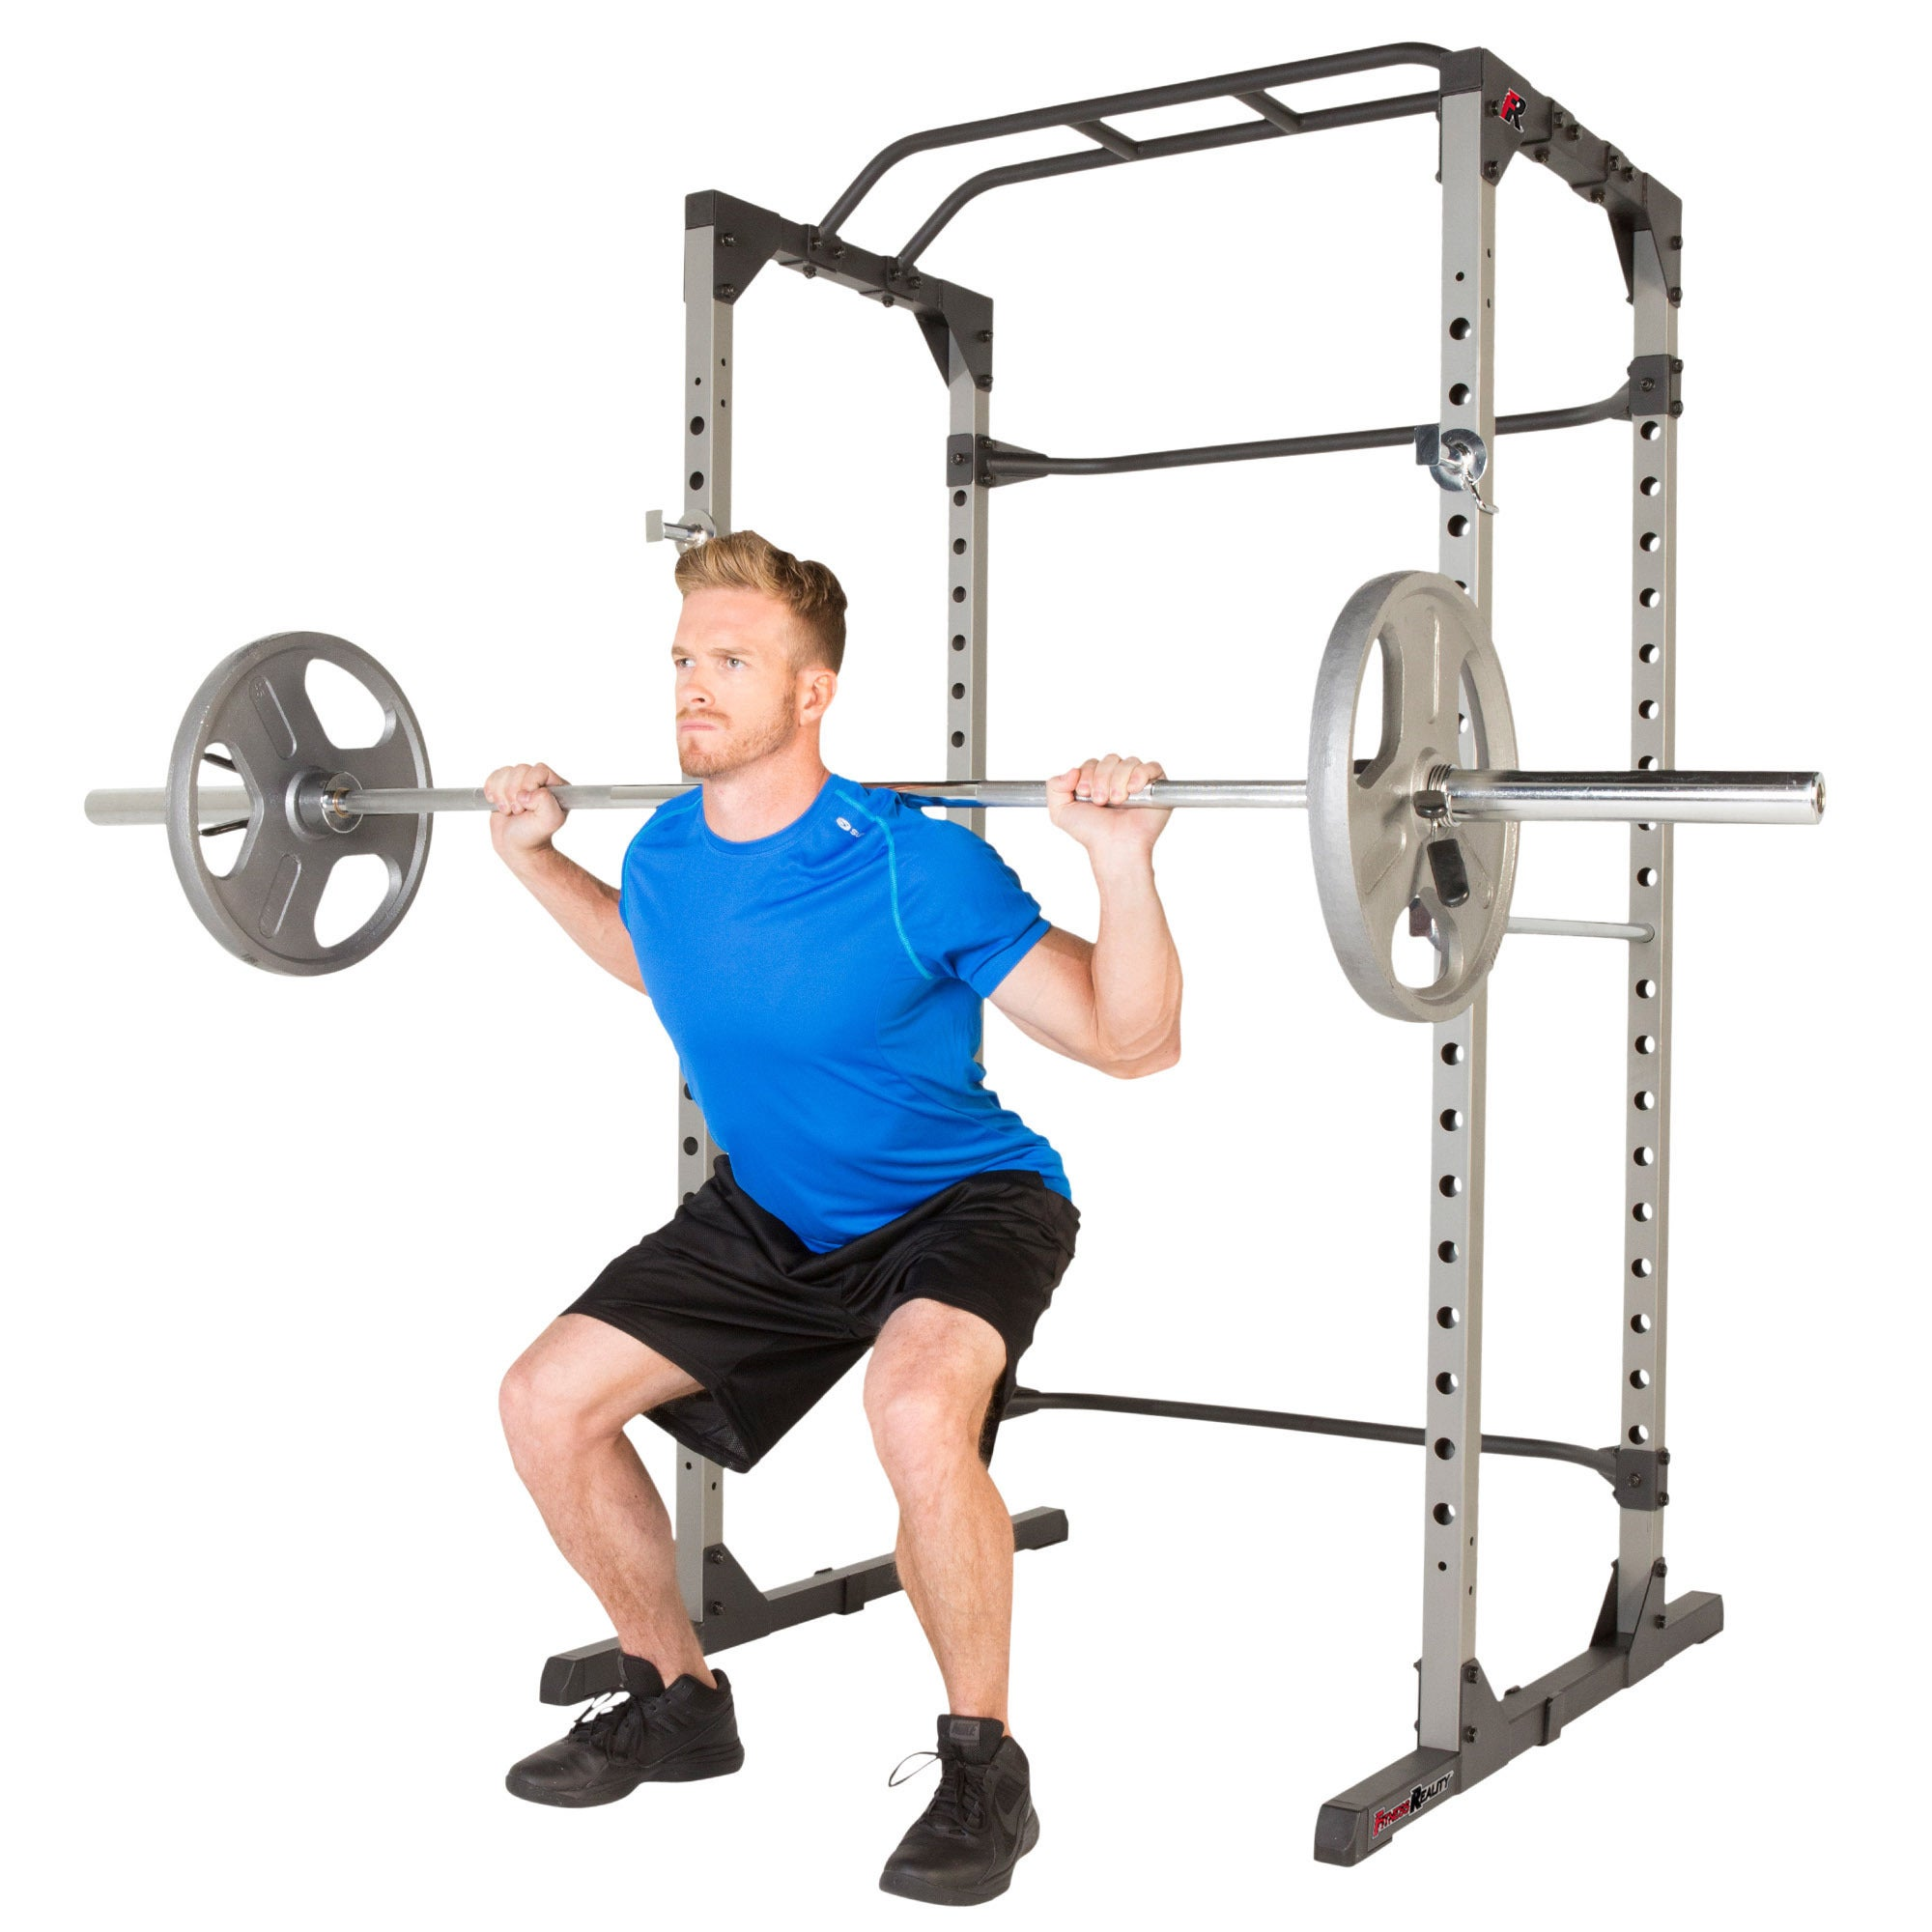 19e465b662 Shop FITNESS REALITY 810XLT Power Cage with 800lb Weight Capacity - Ships  To Canada - Overstock - 14046160